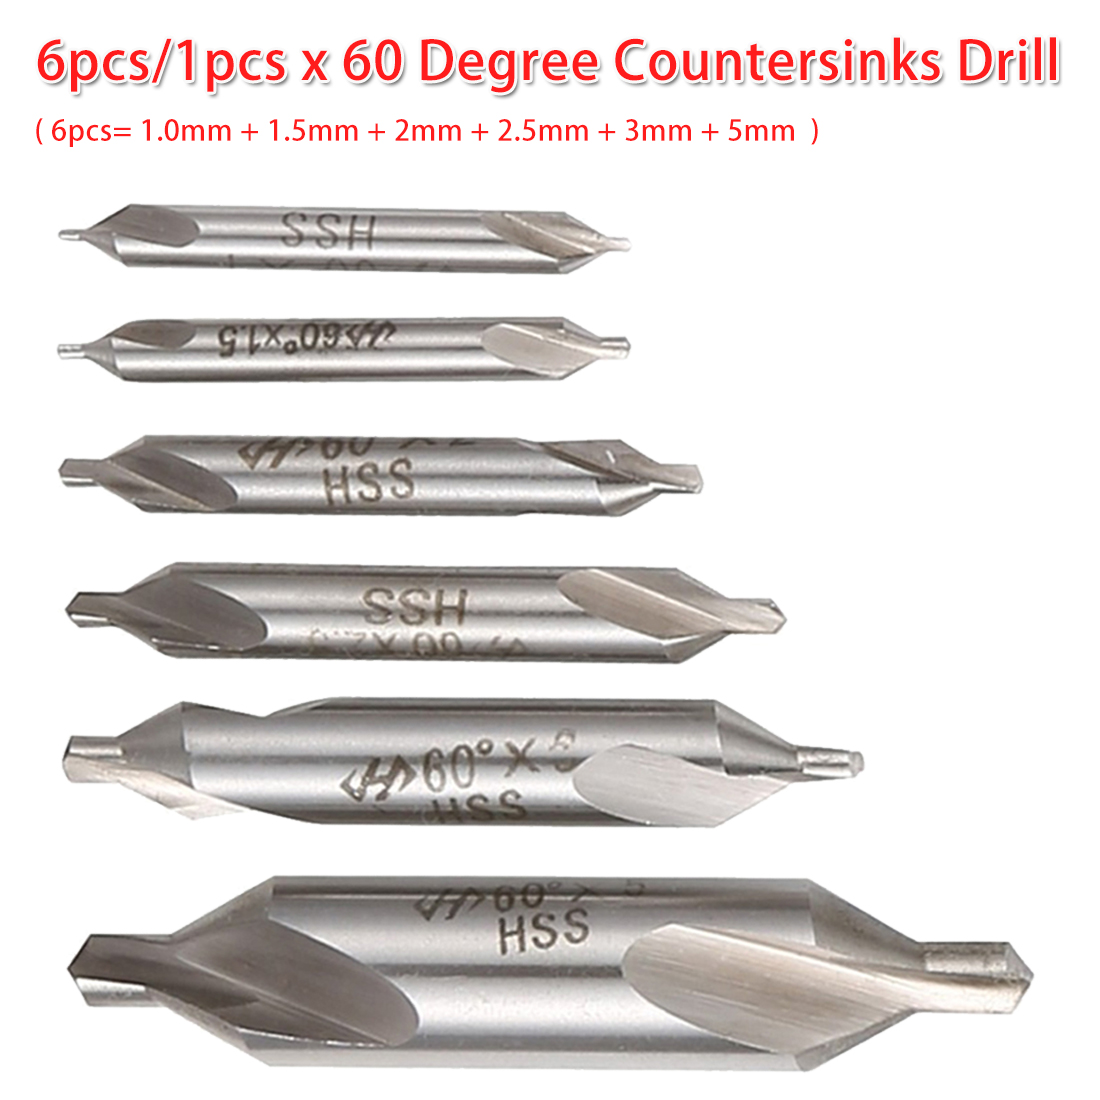 Combined Center Drill Bit 6pcs/1pcs HSS 60 Degree Countersink Drill 1.0mm 1.5mm 2mm 2.5mm 3mm 5mm For Bodhi Rosary/ Woodwork